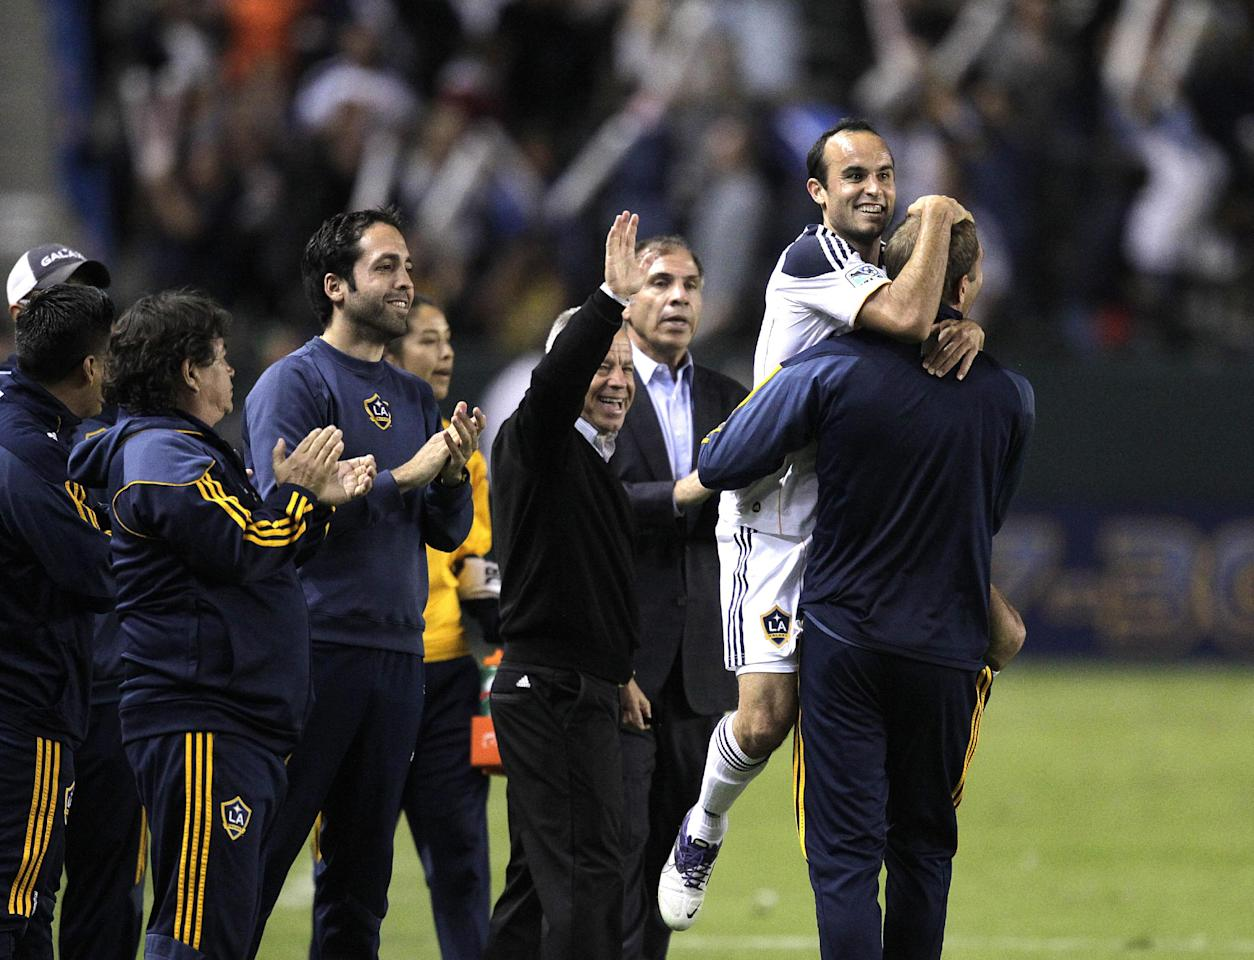 Los Angeles Galaxy forward Landon Donovan, second from right, celebrates after scoring on a penalty kick during the second half of the second game of an MLS soccer Western Conference semifinal against the New York Red Bulls at Home Depot Center in Carson, Calif., Thursday, Nov. 3, 2011. The Galaxy won 2-1. (AP Photo/Jae Hong)